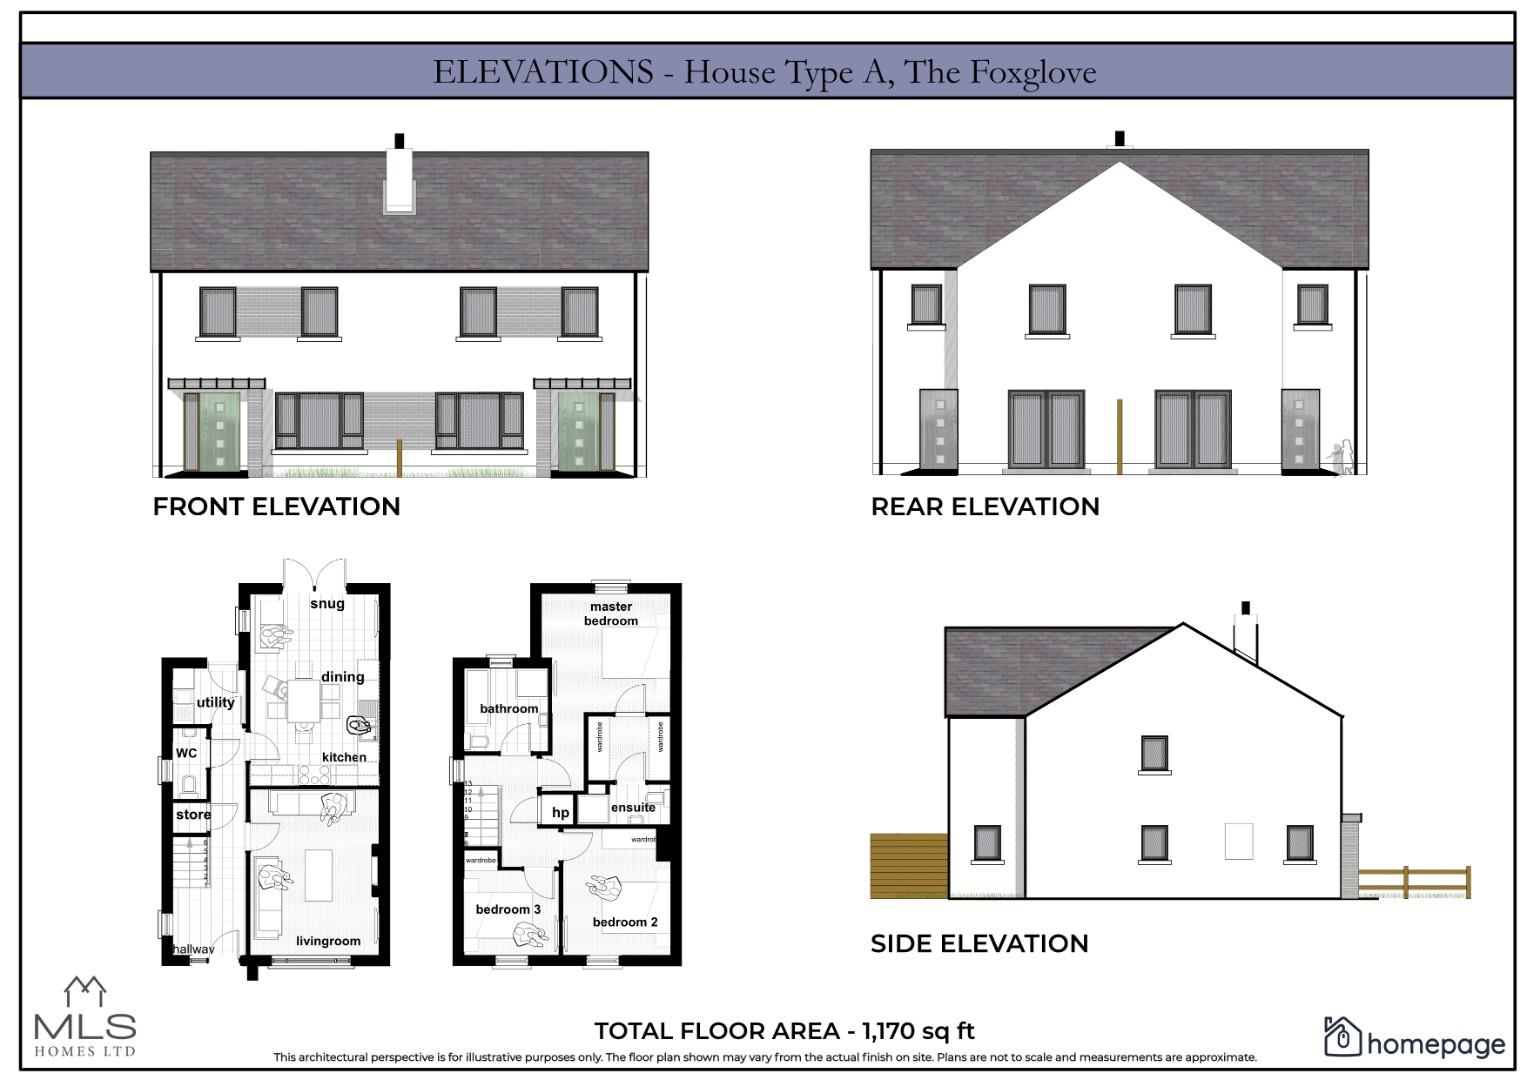 Elevations - House Type A.jpg